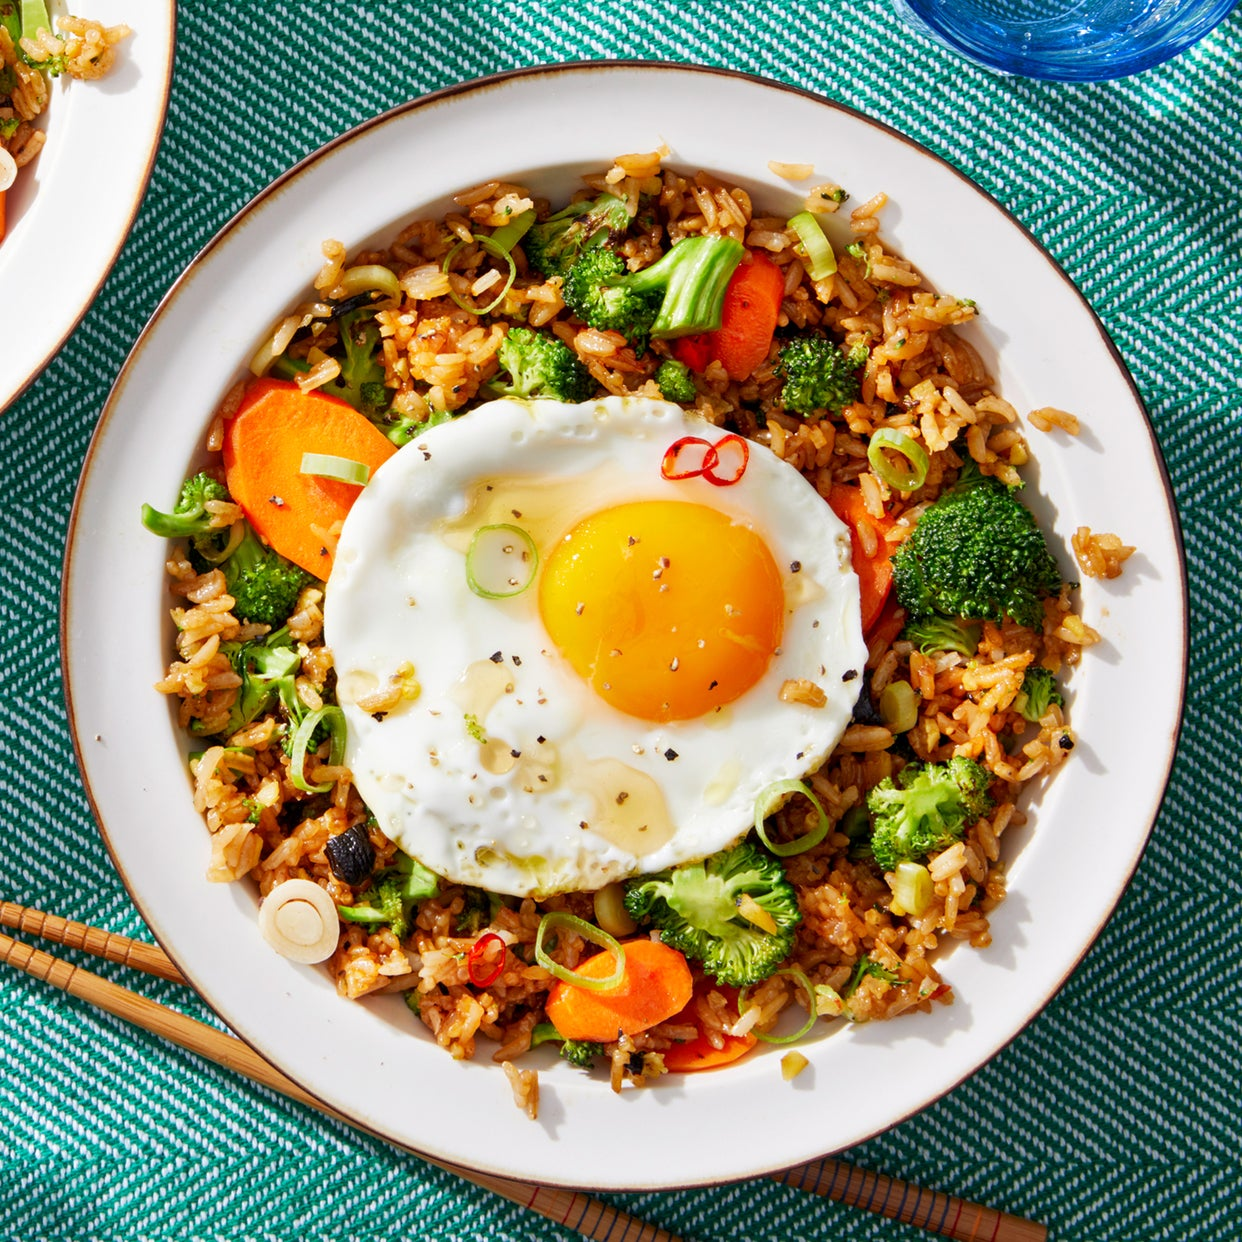 Vegetable Fried Rice with Broccoli, Carrots, & Spicy Pepper Sauce